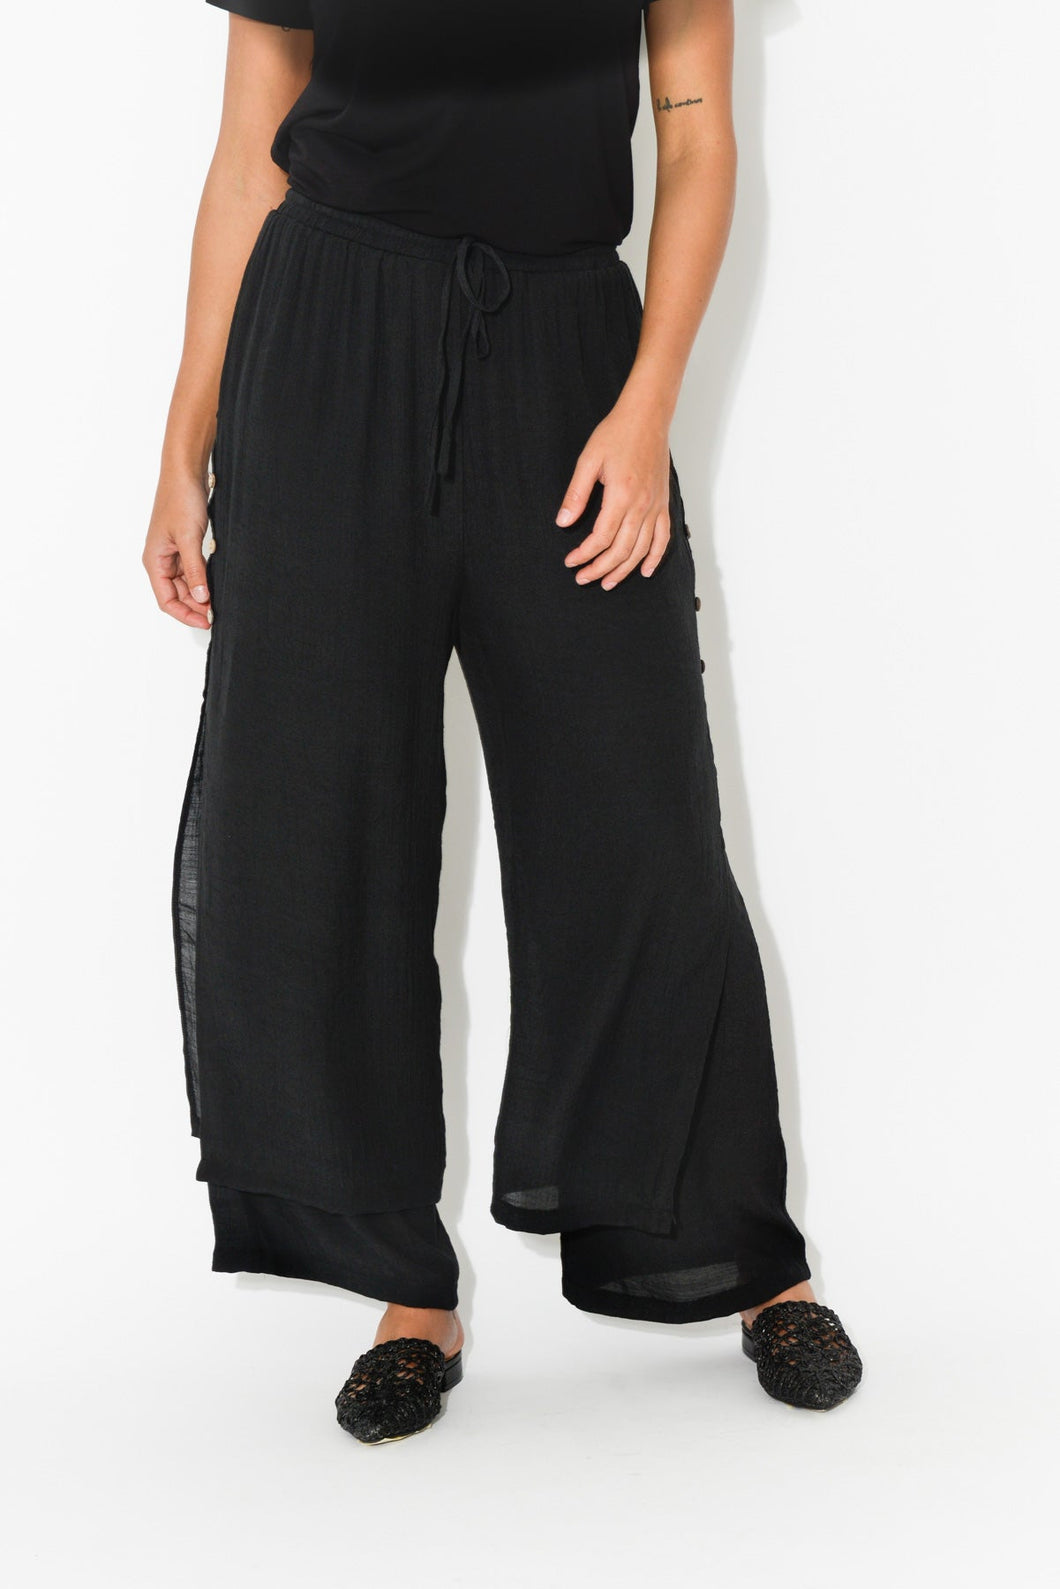 Black Layered Wide Leg Pant - Cali and Co - Blue Bungalow Online